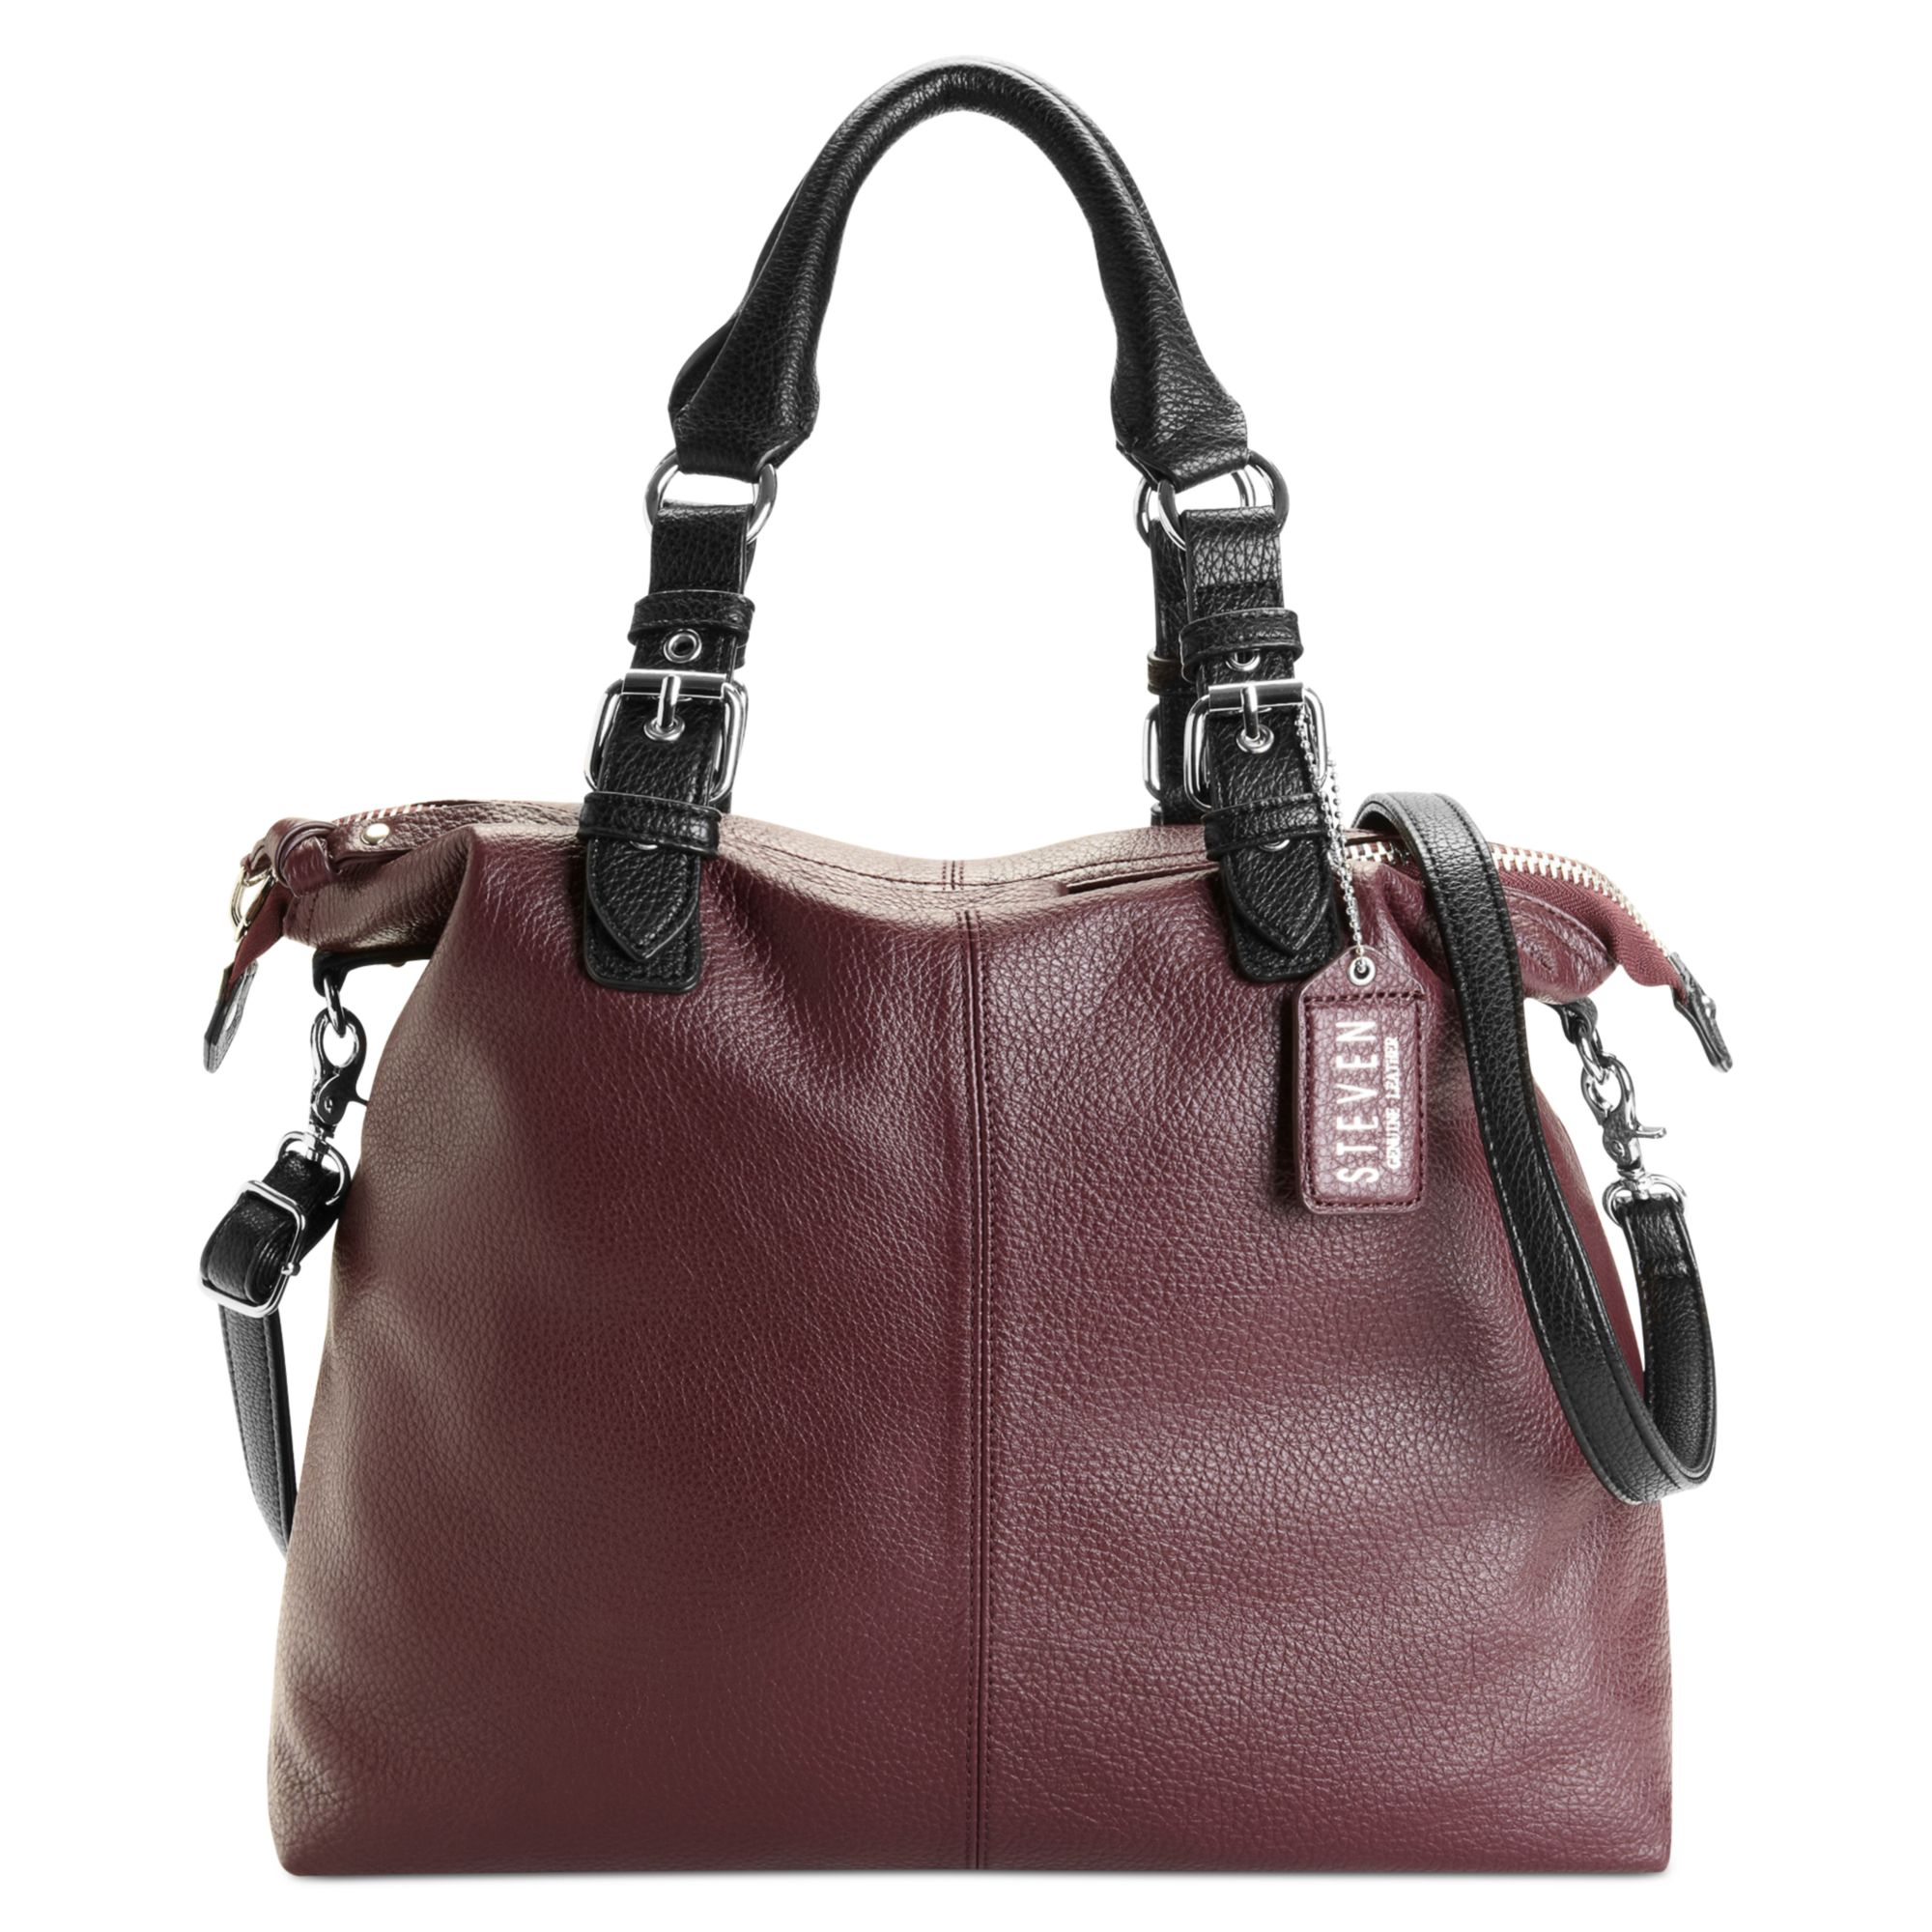 Steven By Steve Madden Handbag Tote in Purple (Aubergine)